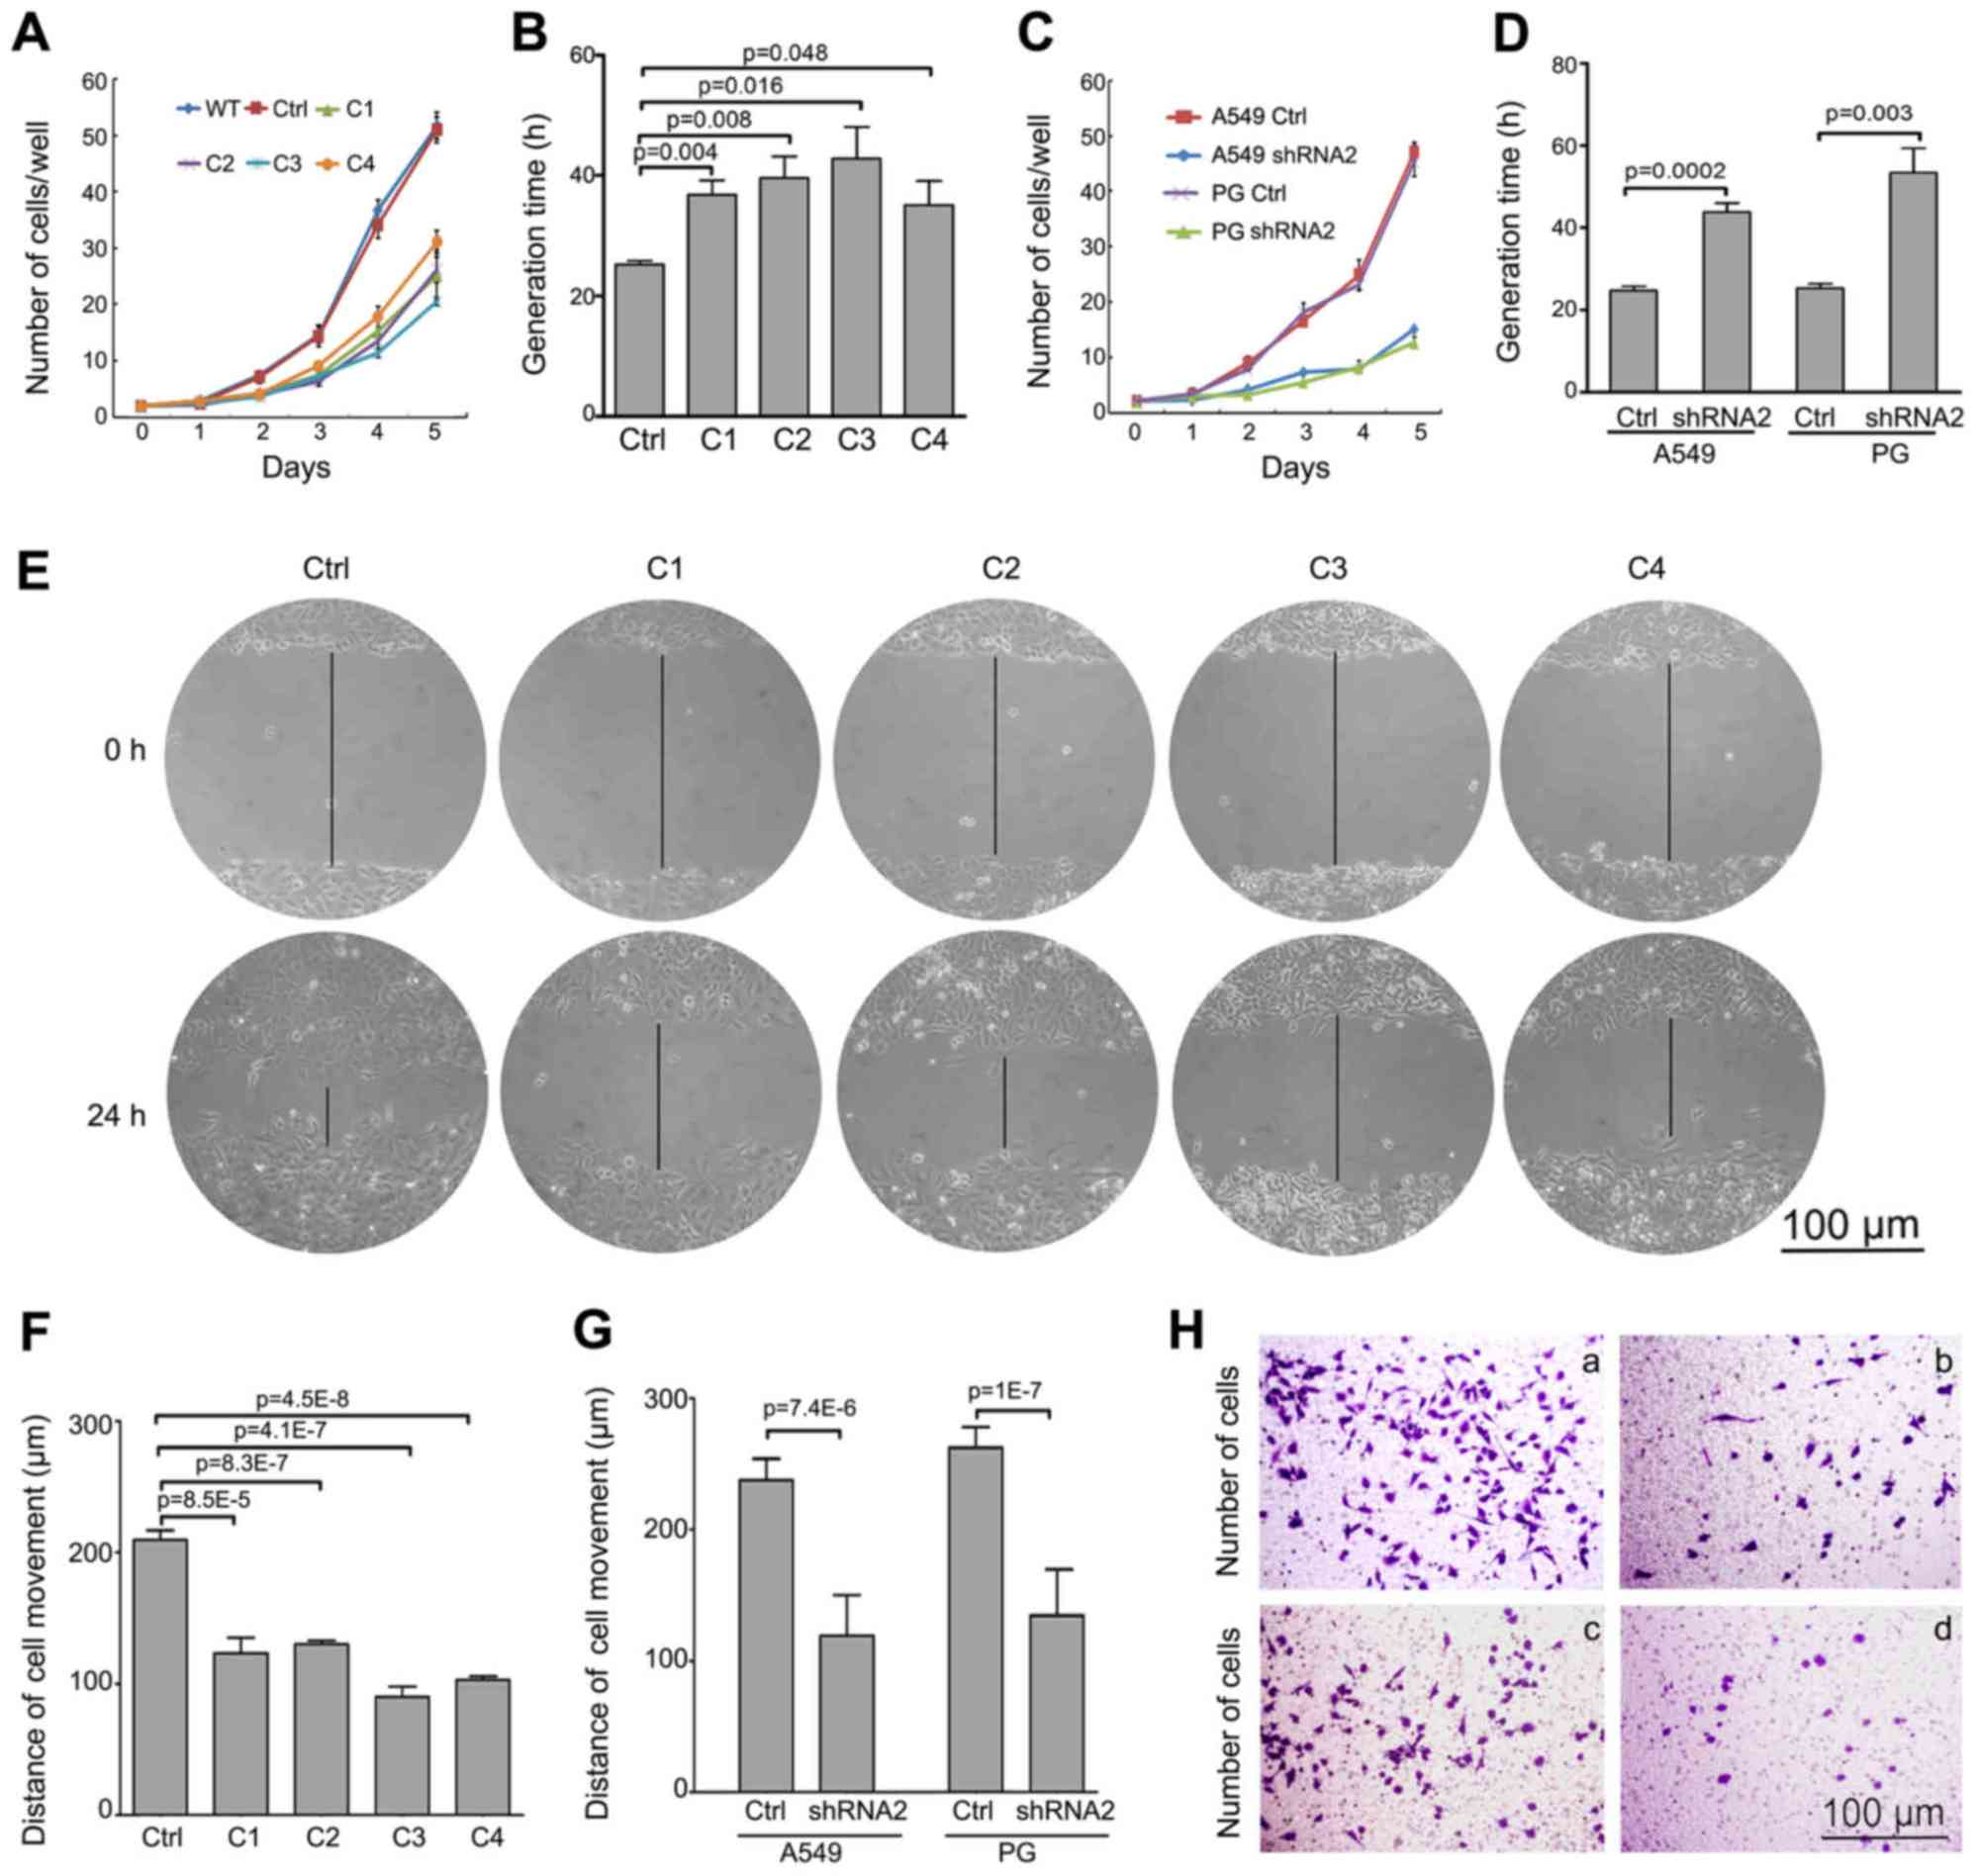 hight resolution of snail downregulates proliferation and migration behavior of lung cancer cells in vitro proliferation of stable snail sirna2 transfected clones a